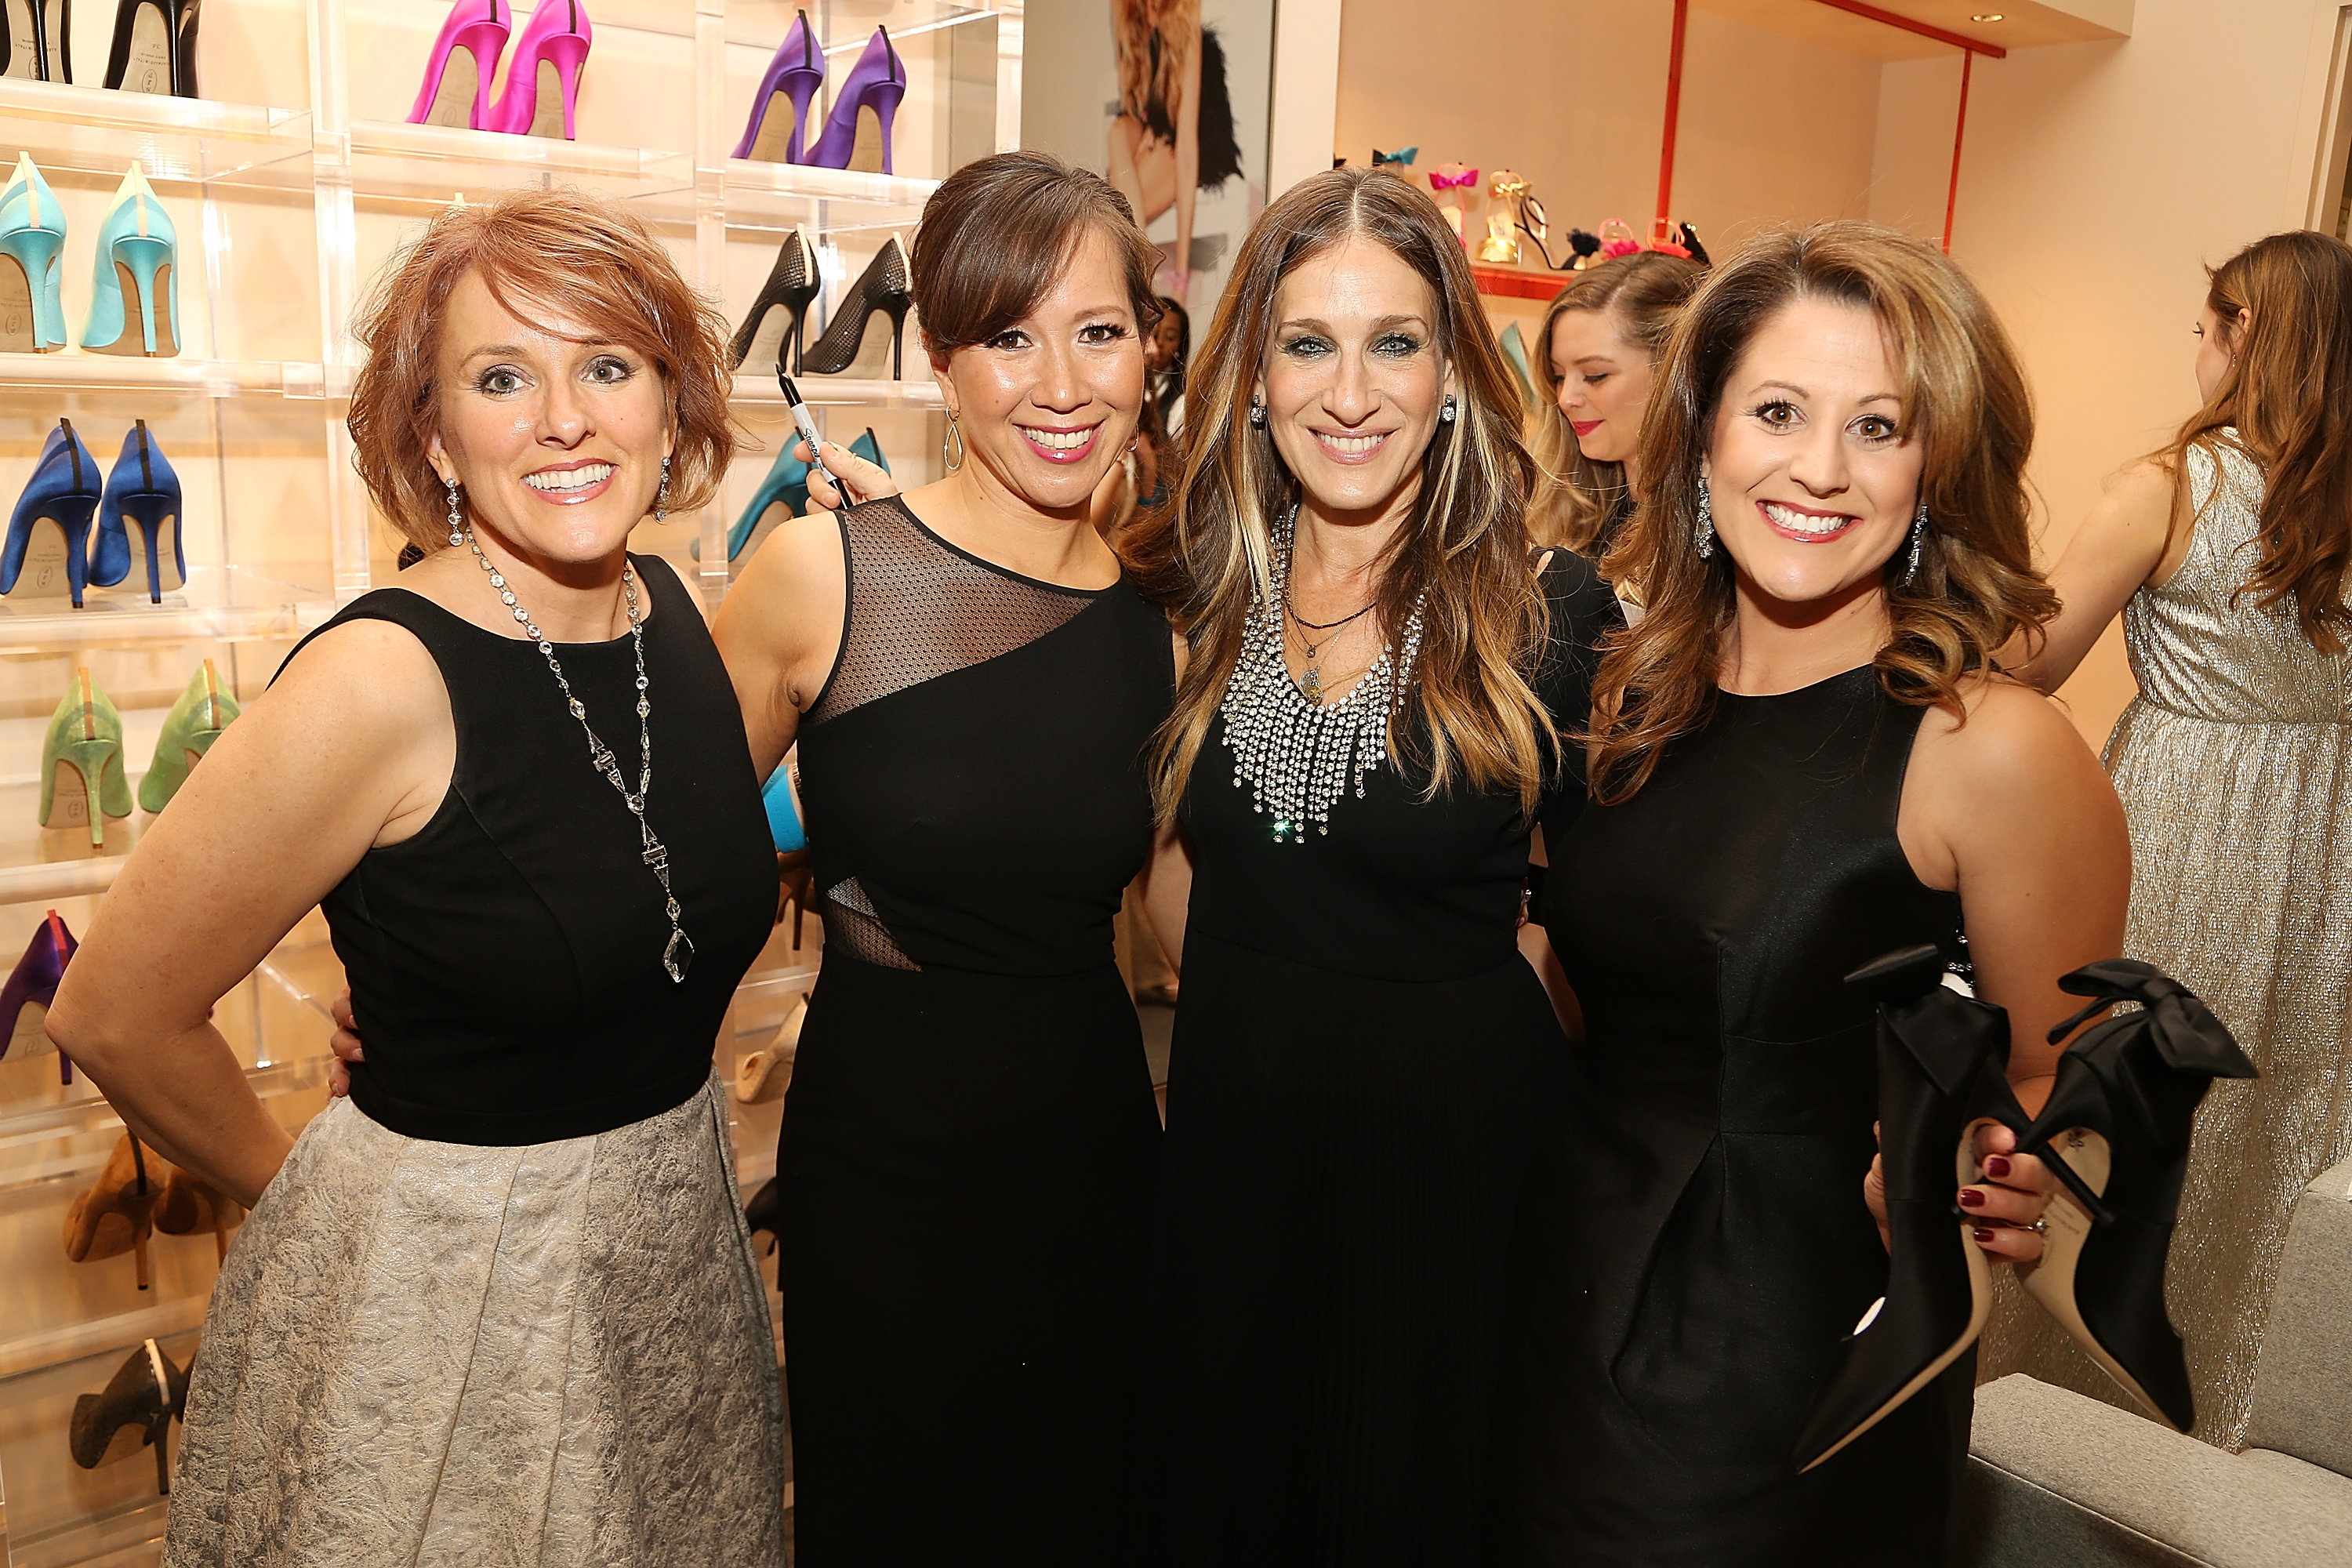 Sarah Jessica Parker with shoppers at the MGM National Harbor Grand Opening Gala on December 8, 2016 in National Harbor, Maryland.  Parker opened her first brick and mortar store inside the MGM National Harbor in December 2016. (Photo by Paul Morigi/Getty Images for MGM National Harbor)